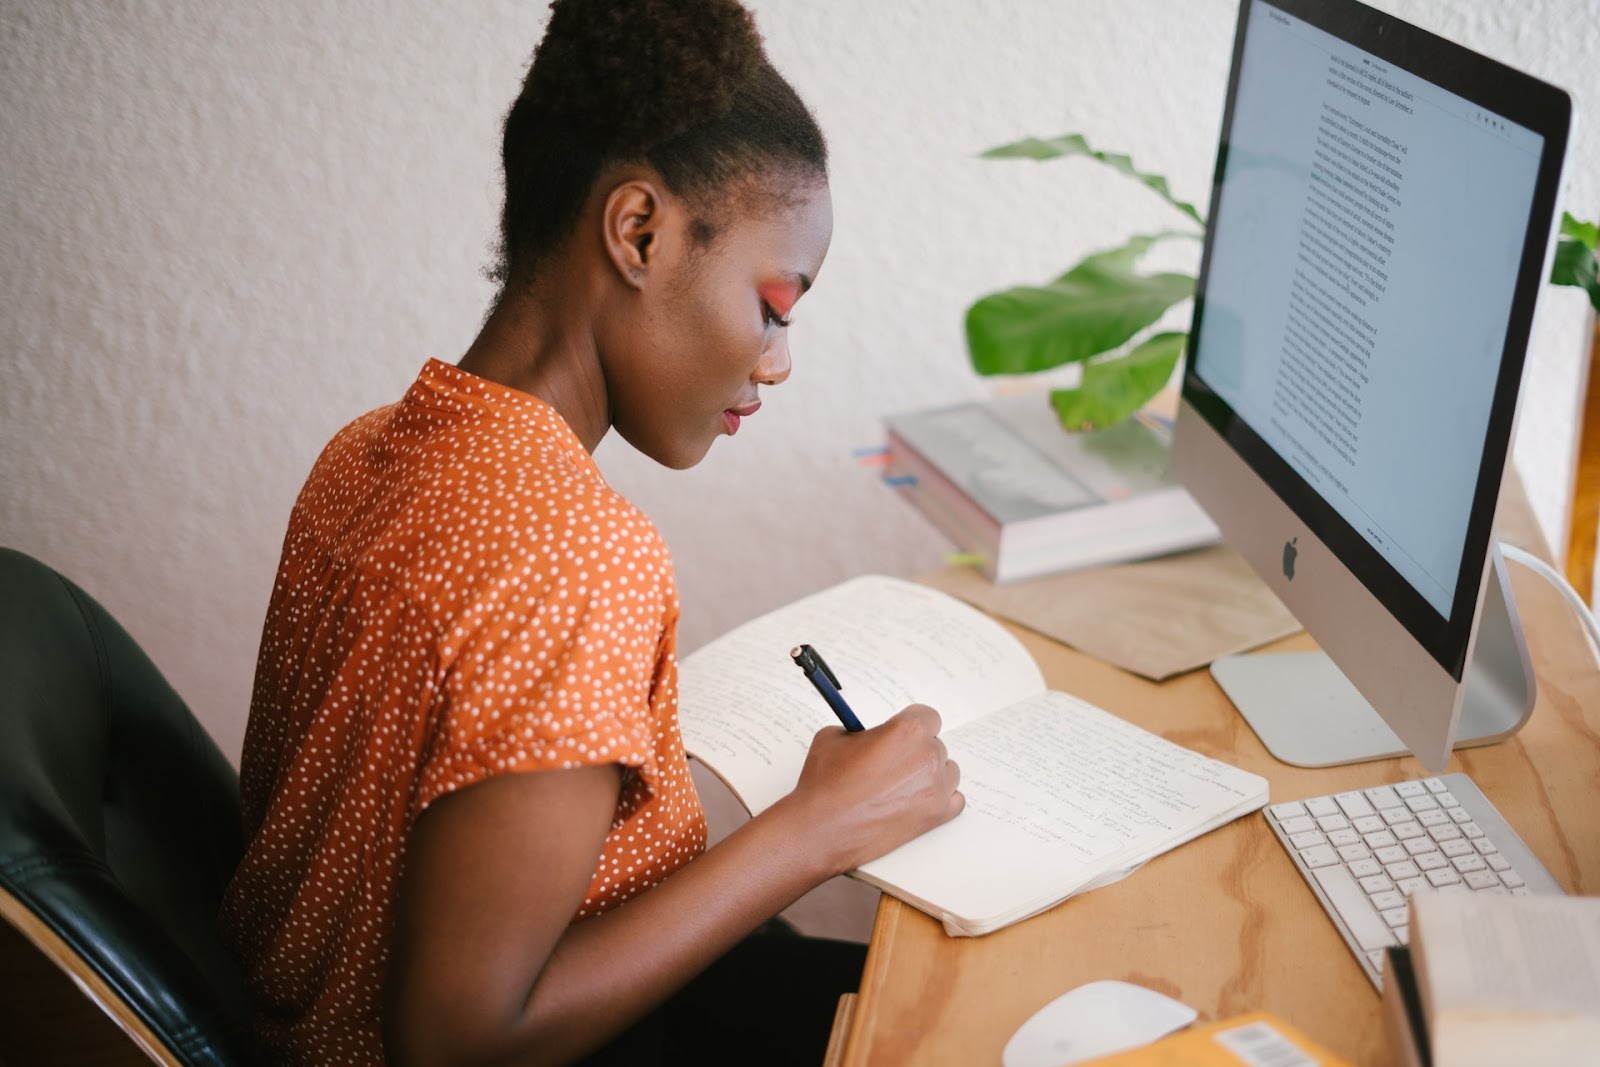 A woman in an orange shirt takes notes as she reads text on a Mac desktop computer.